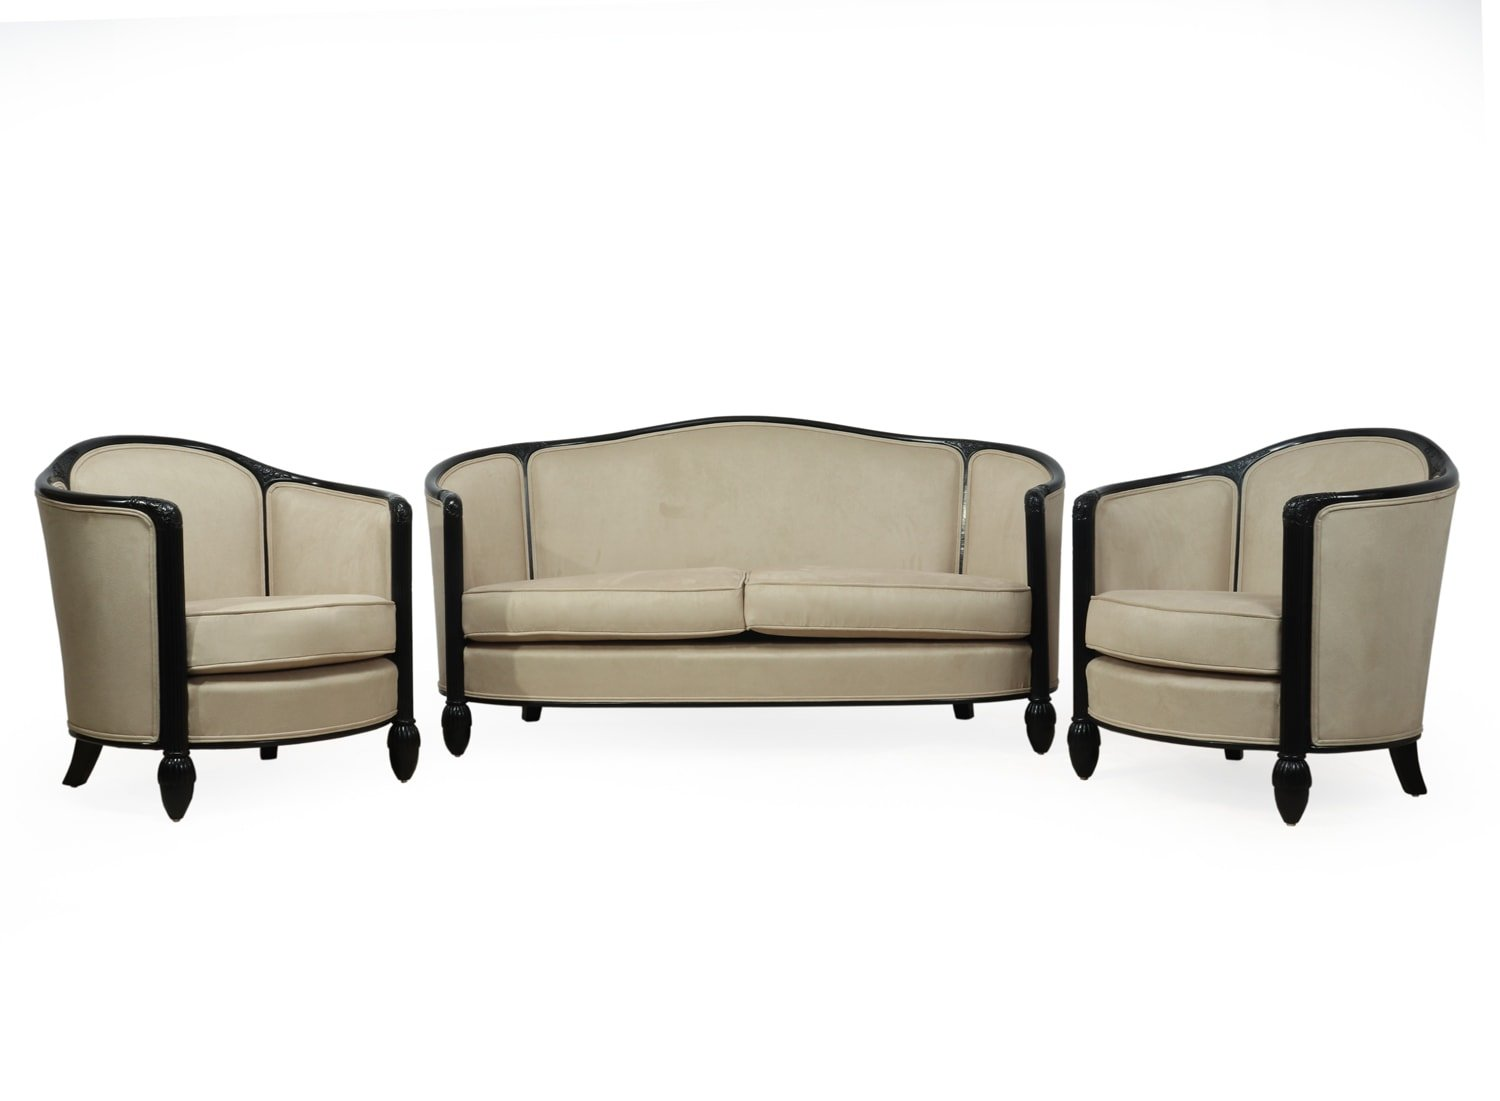 French Art Deco Chairs Sofa By Paul